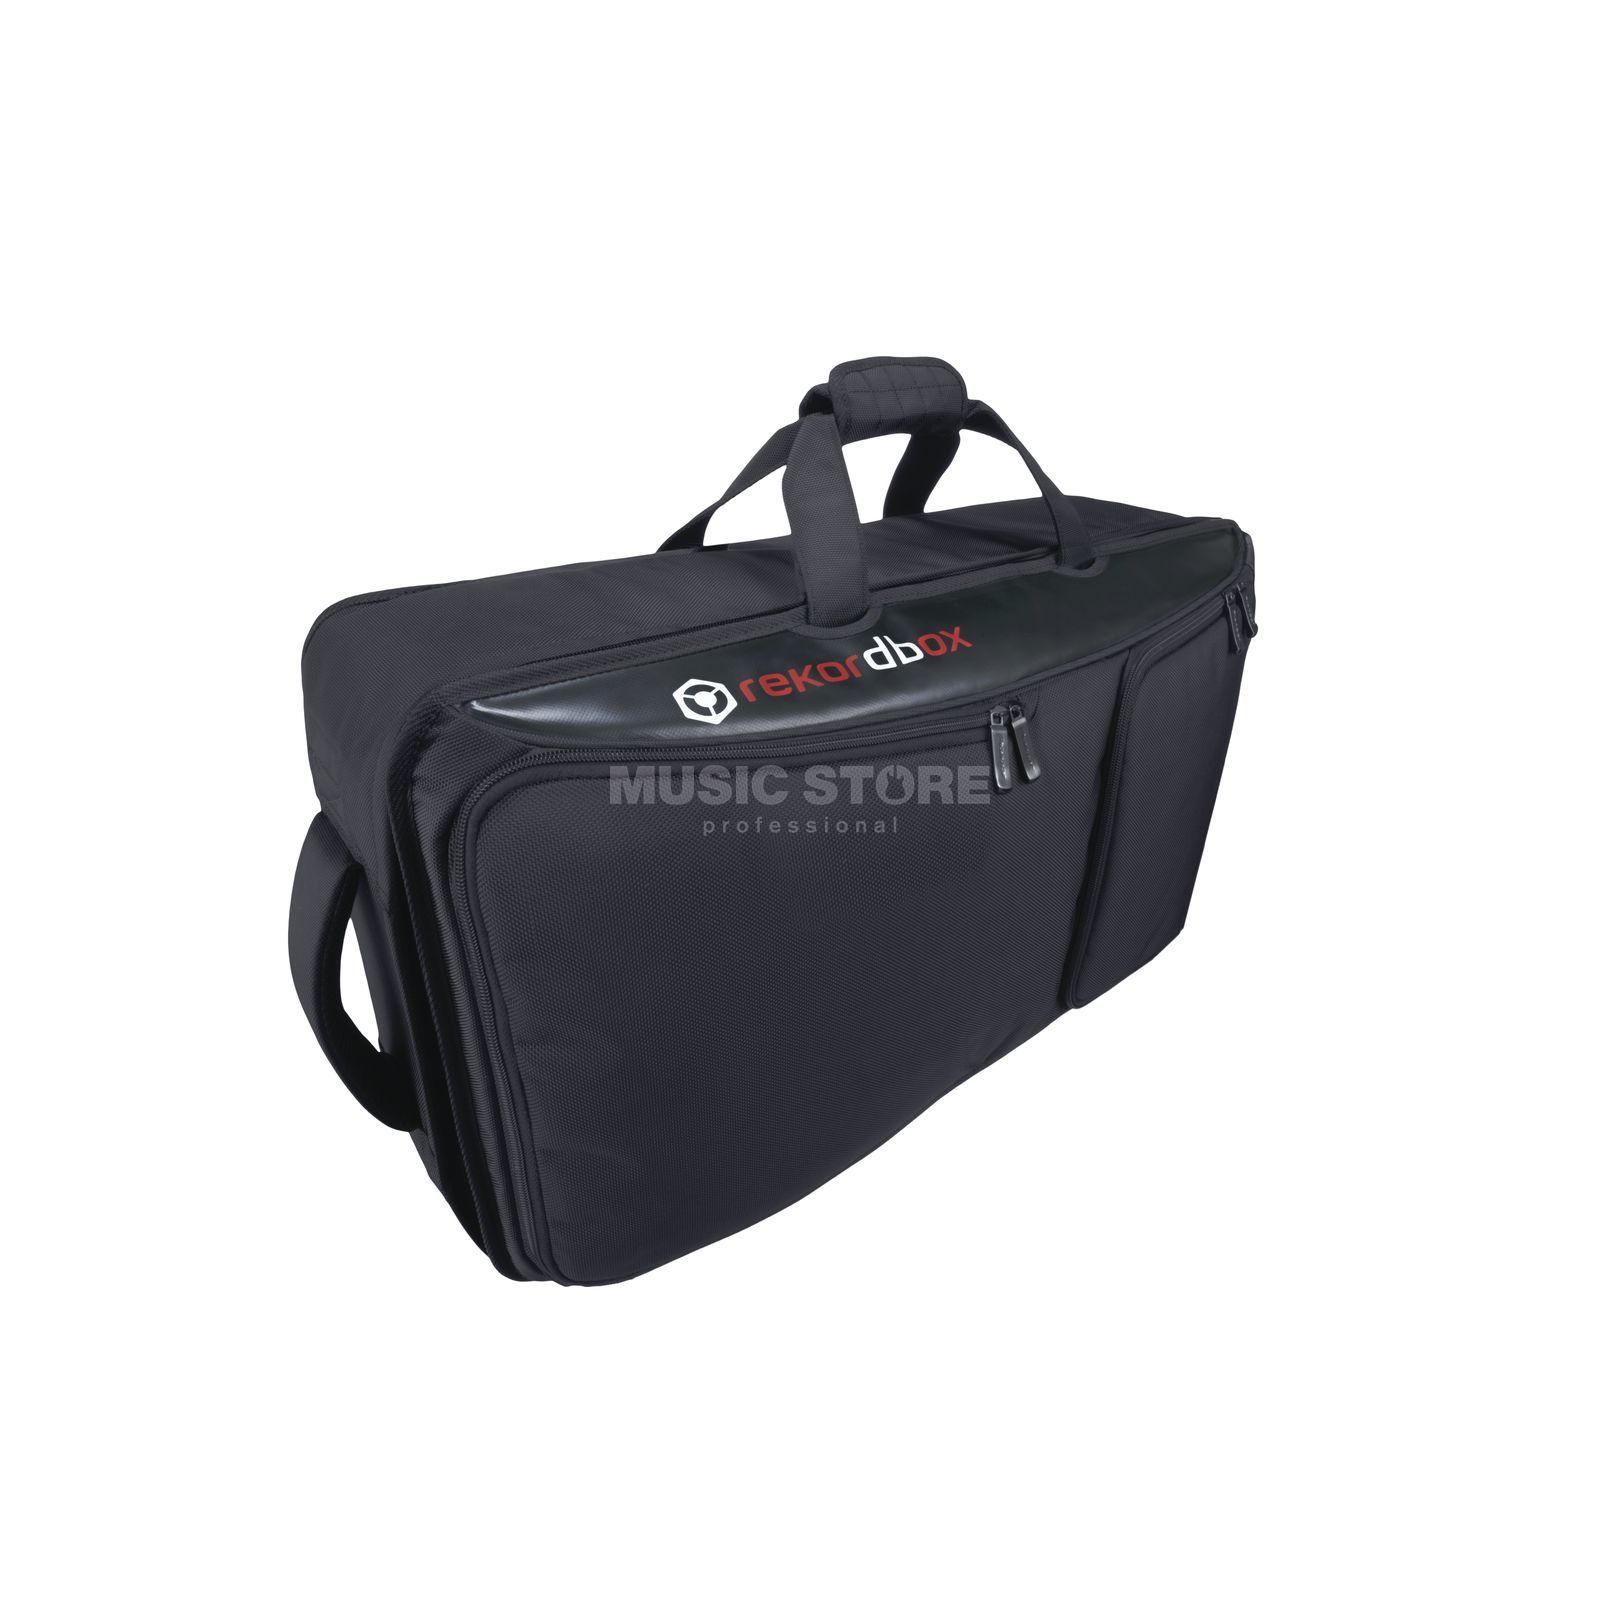 Pioneer DJC-SC3 Softbag for XDJ-R1 Product Image